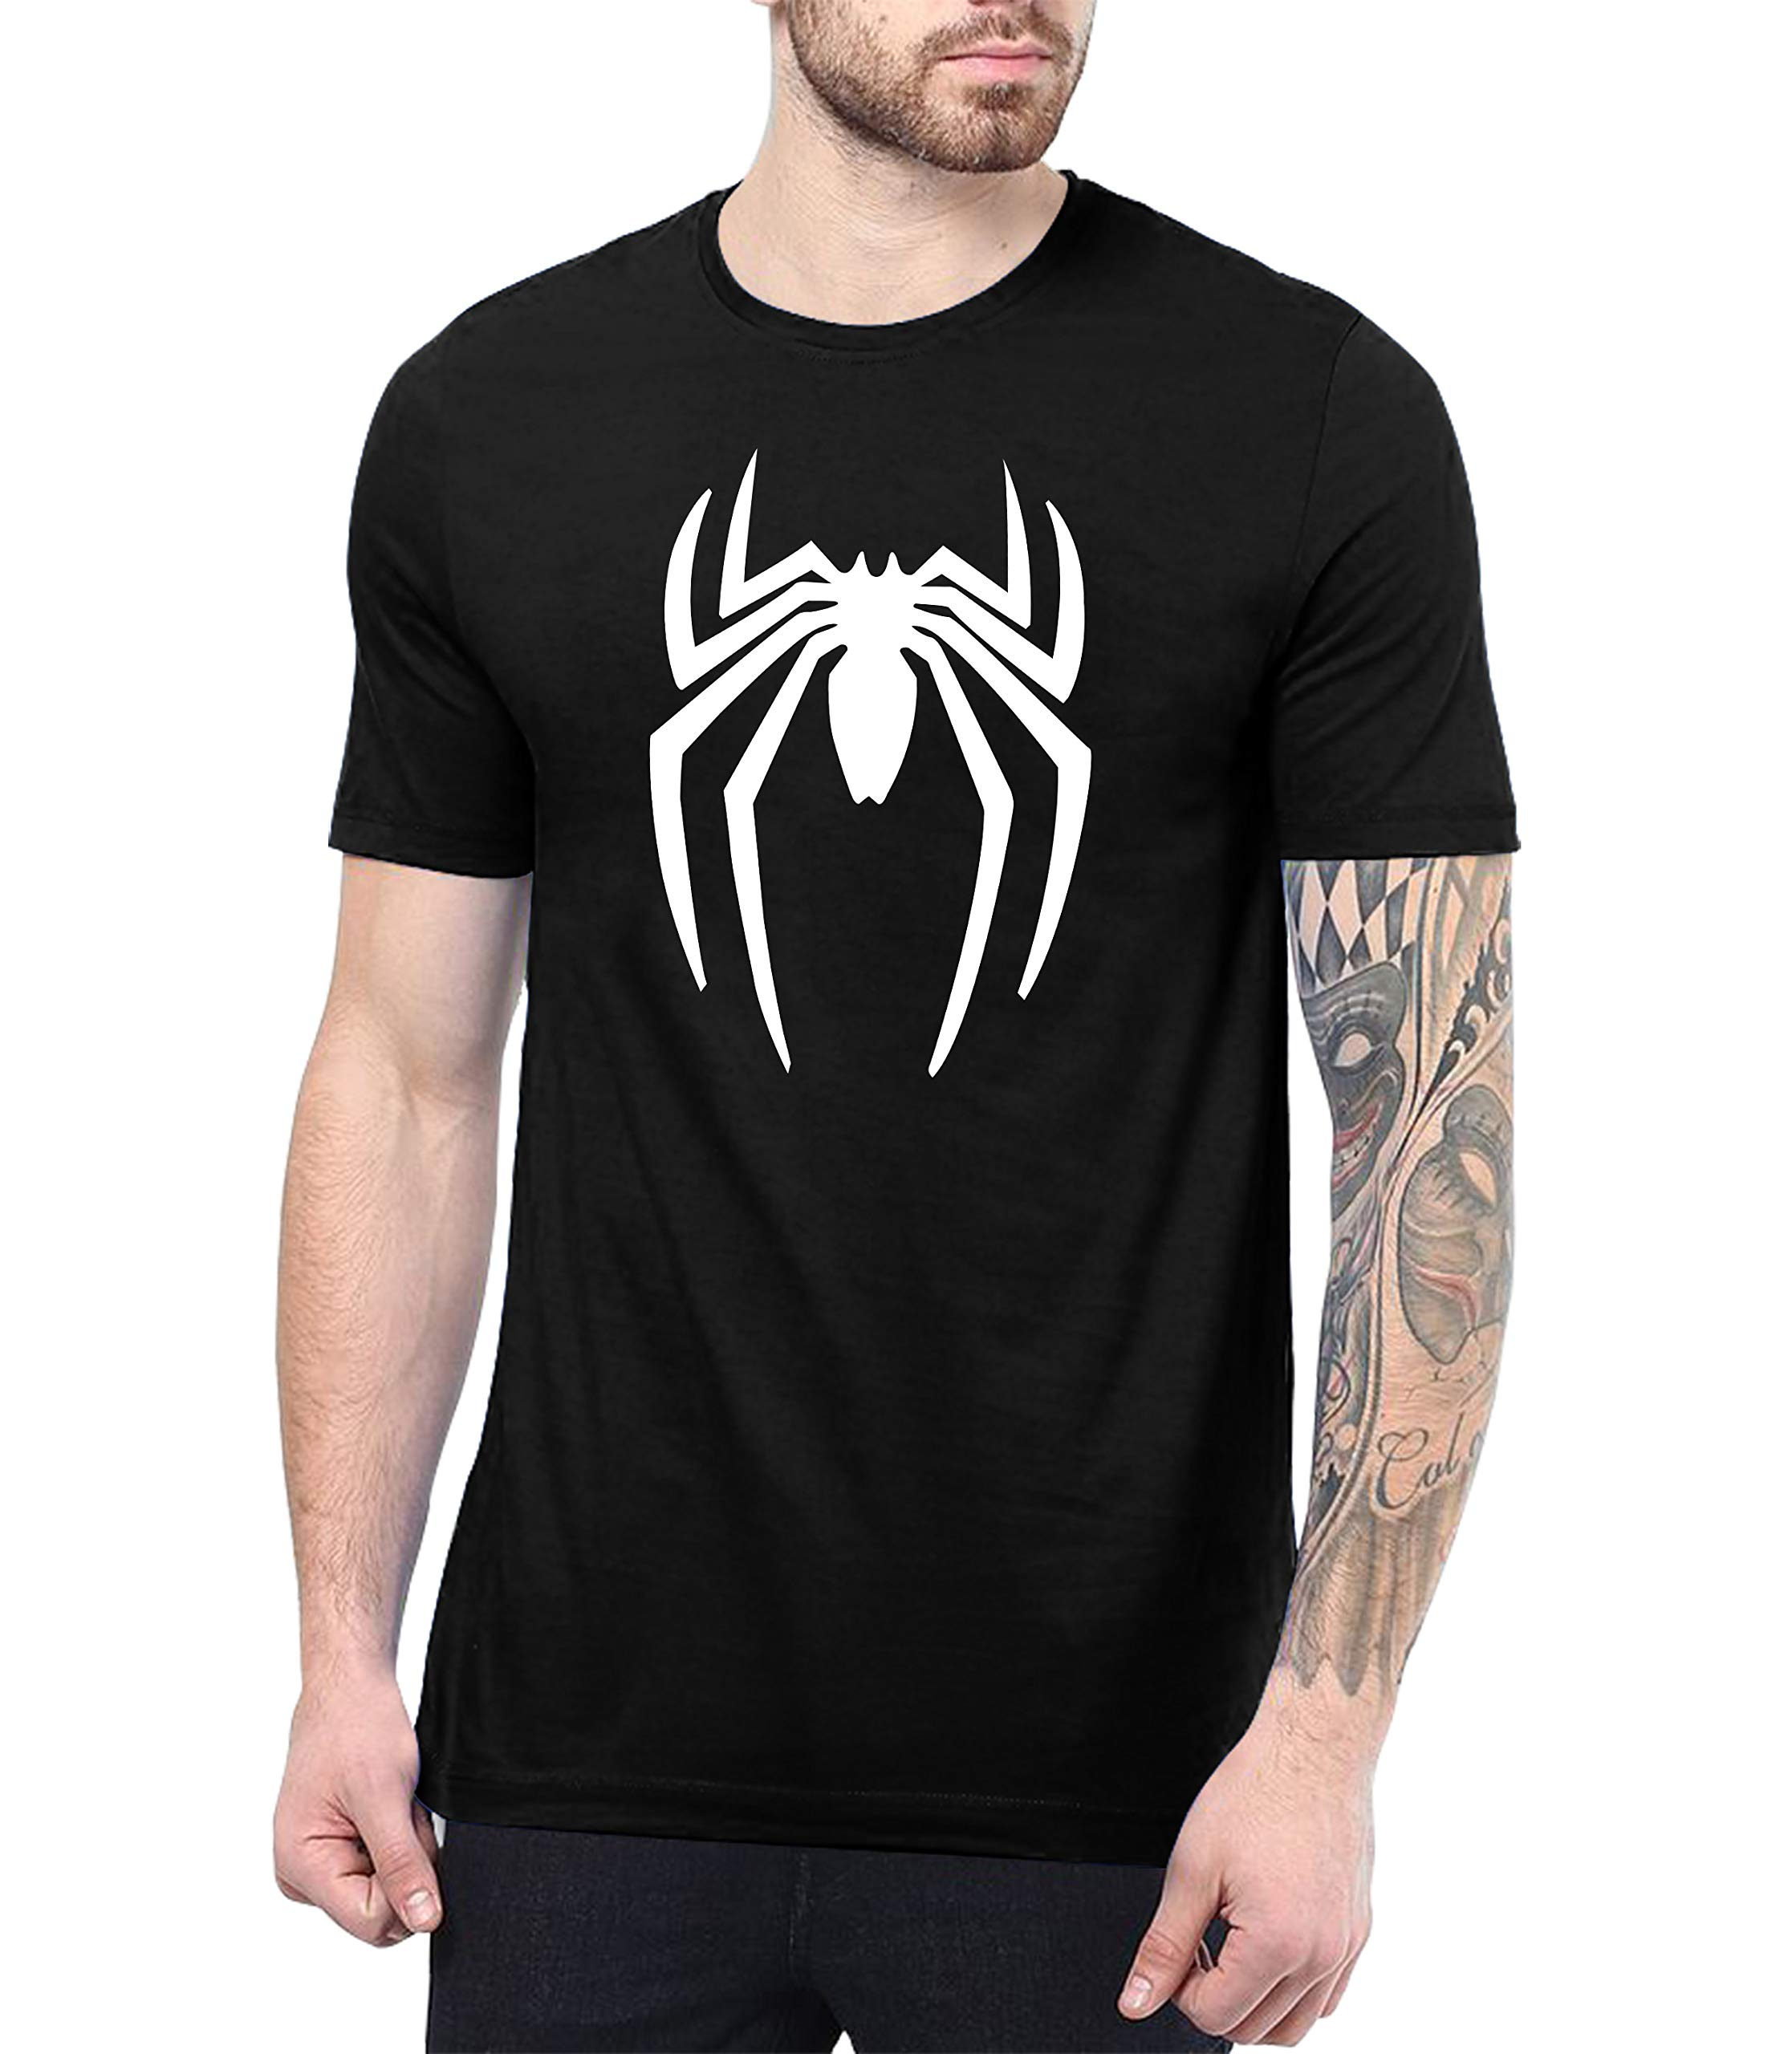 Decrum Spider Shirt For S Adult Graphic Tees For 7782